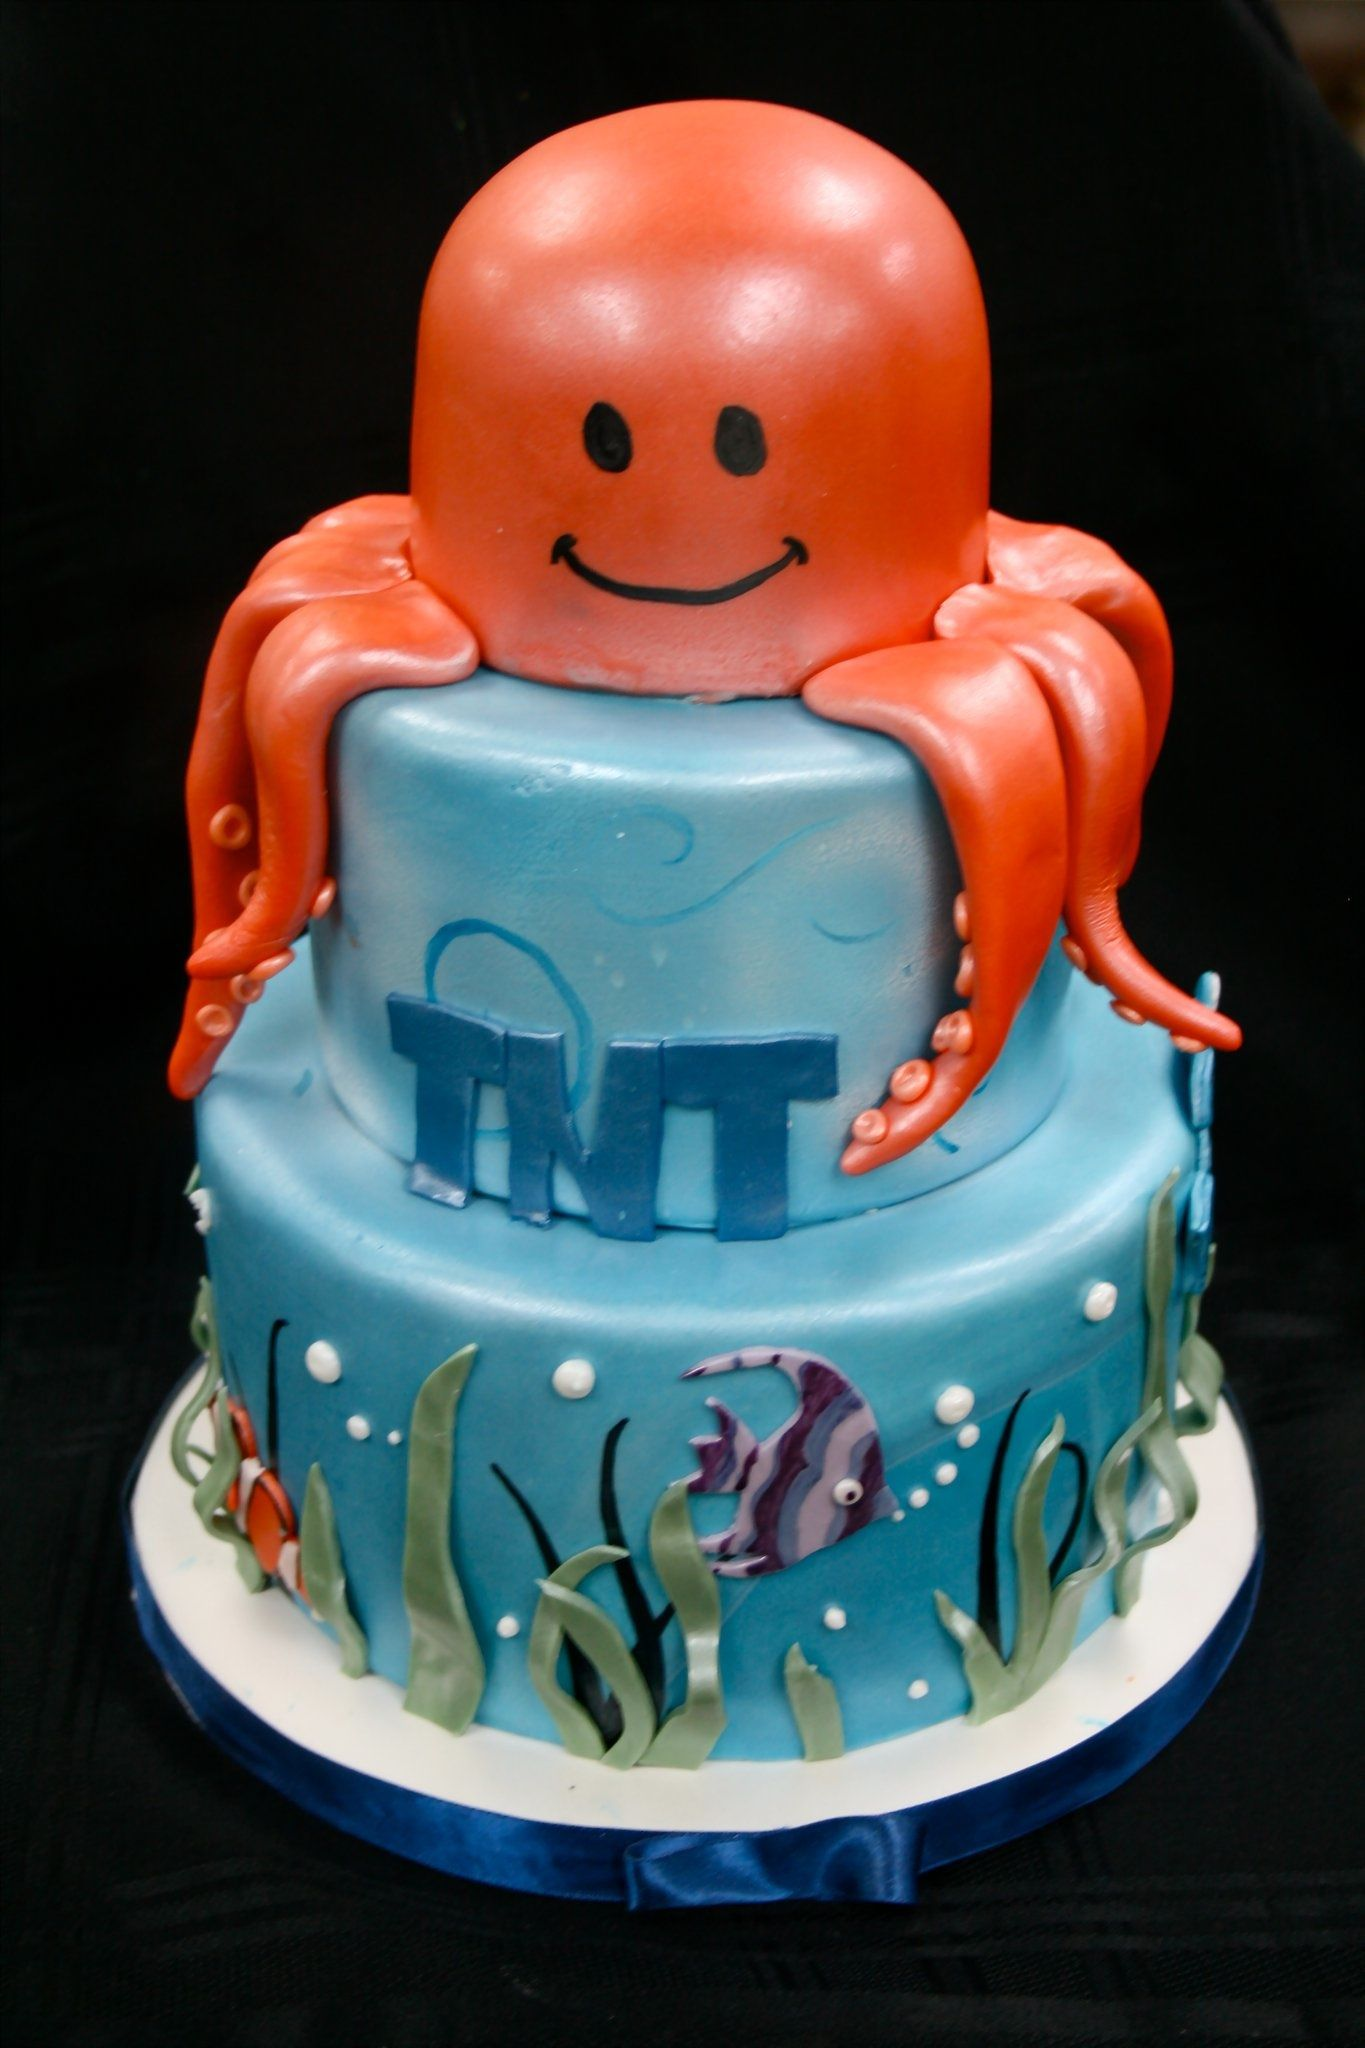 Under The Sea Themed Childrens Birthday Cake With Octopus Topper By Gimme Some Sugar Las Vegas